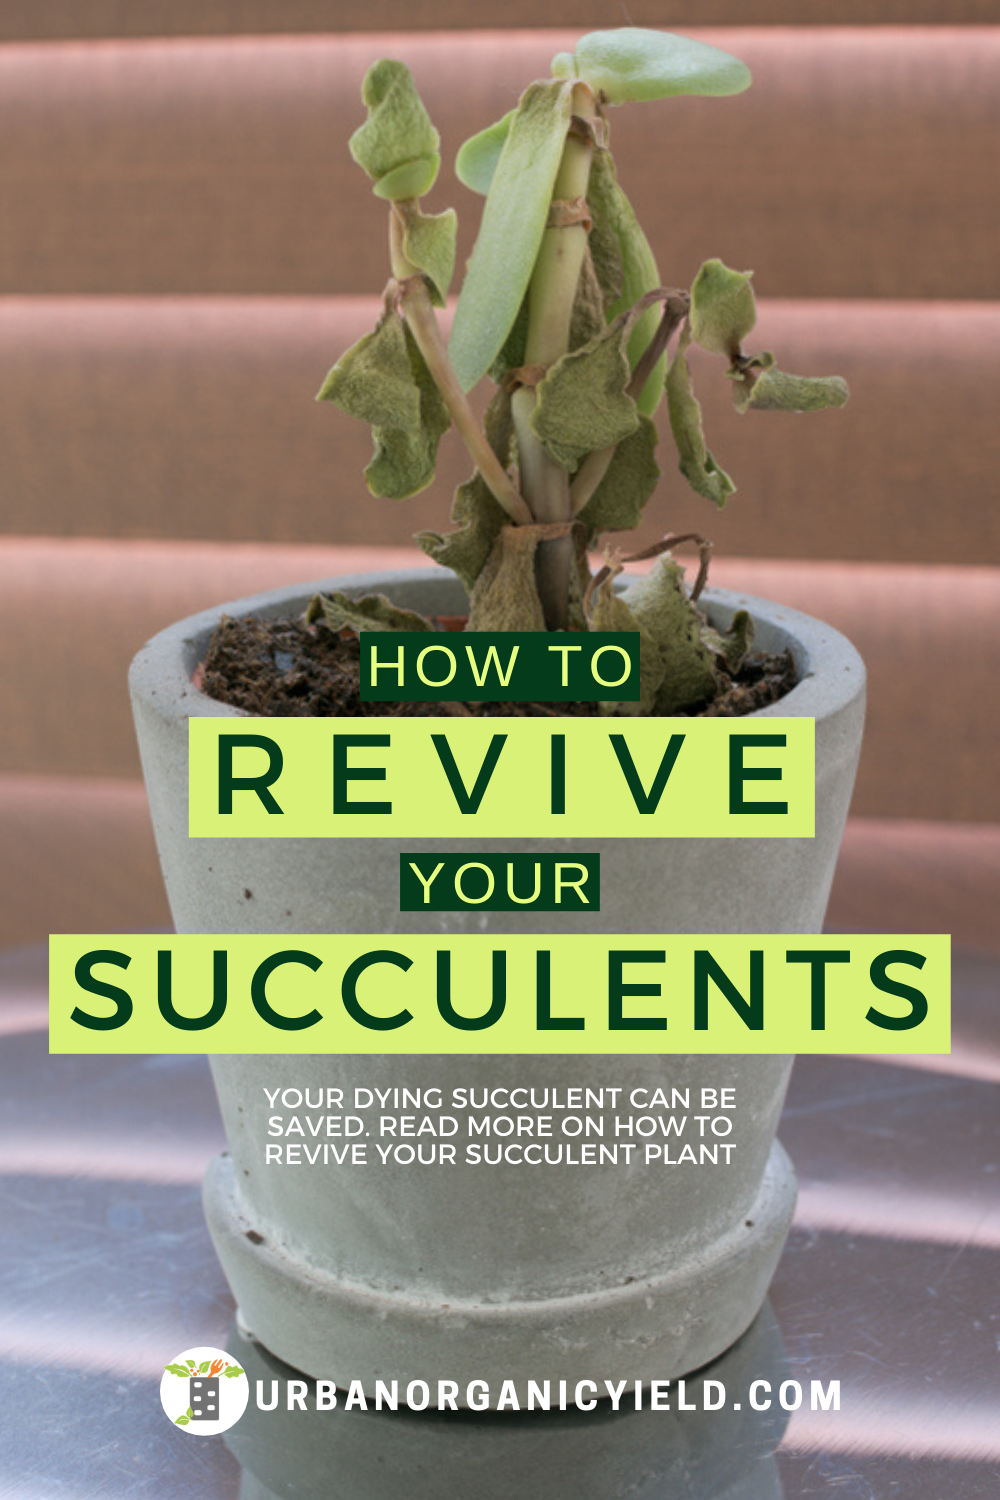 Why Are My Succulents Dying? Learn How To Revive A Succulent Plant